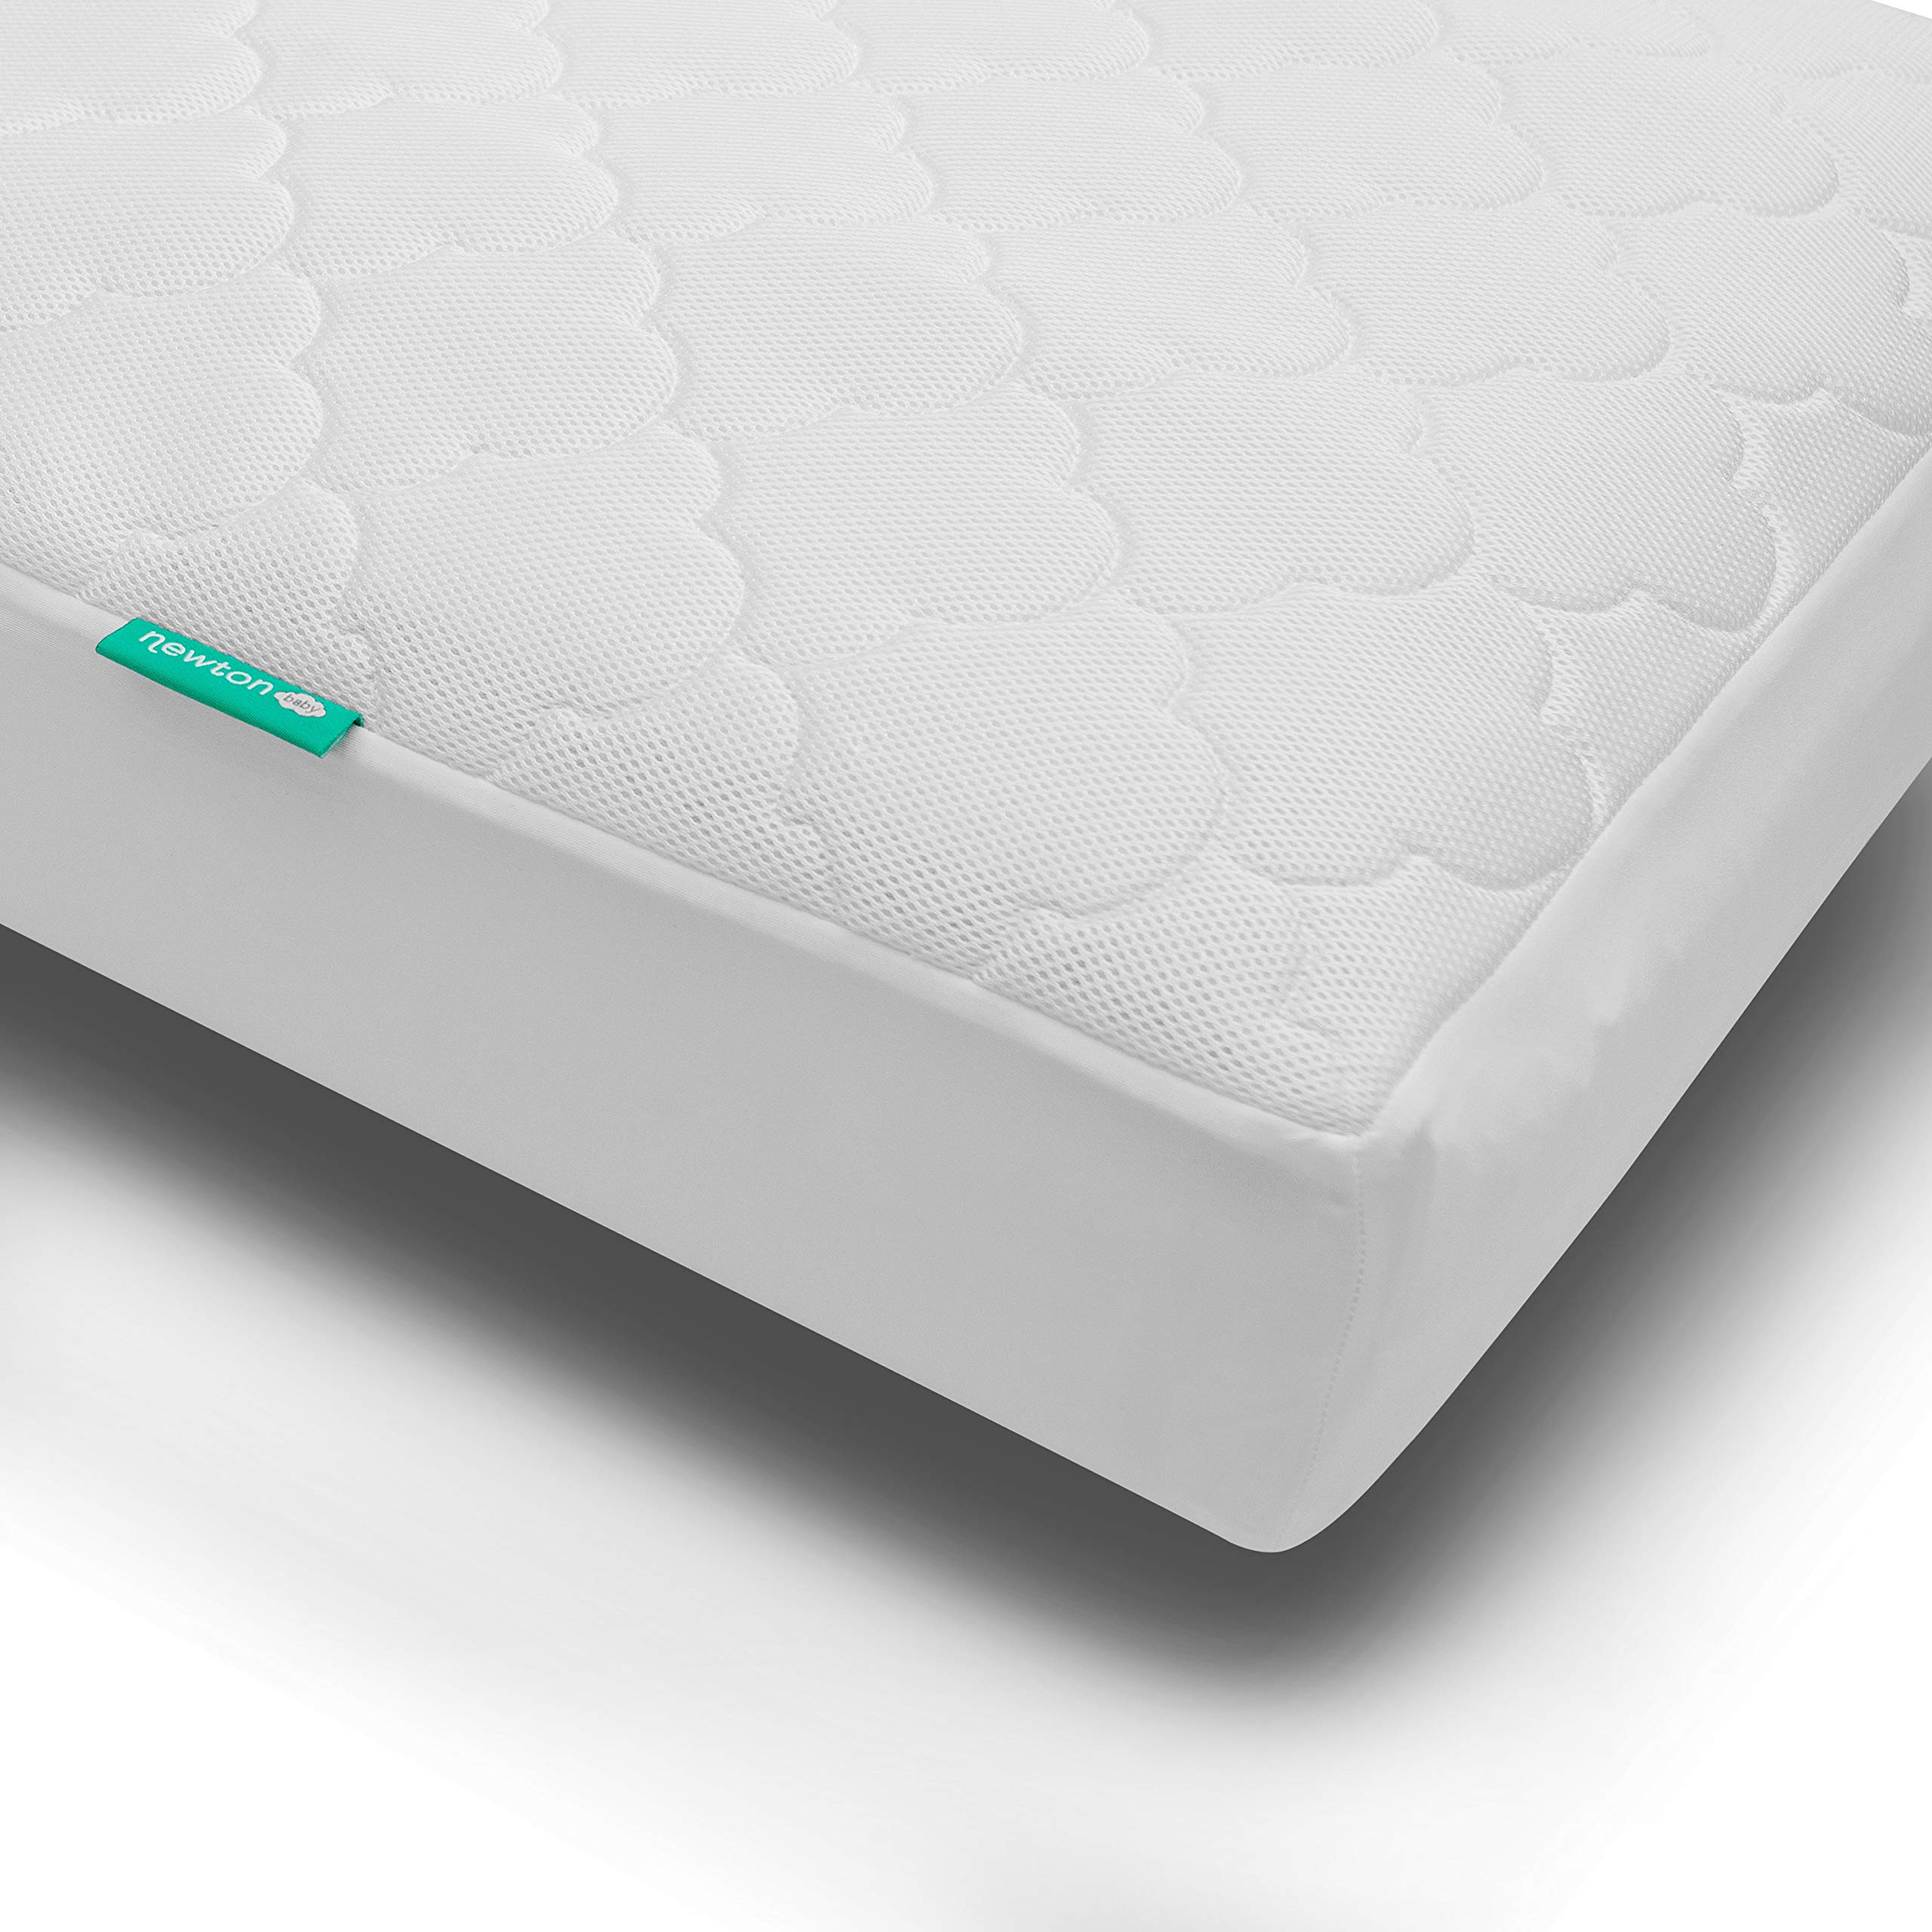 Very Helpful Crib Mattress Pad Amazon.com : Newton Baby Waterproof Crib Mattress Pad Cover | 100%  Breathable Proven to Reduce Suffocation Risk, Universal Fit, 100% Washable,  ...